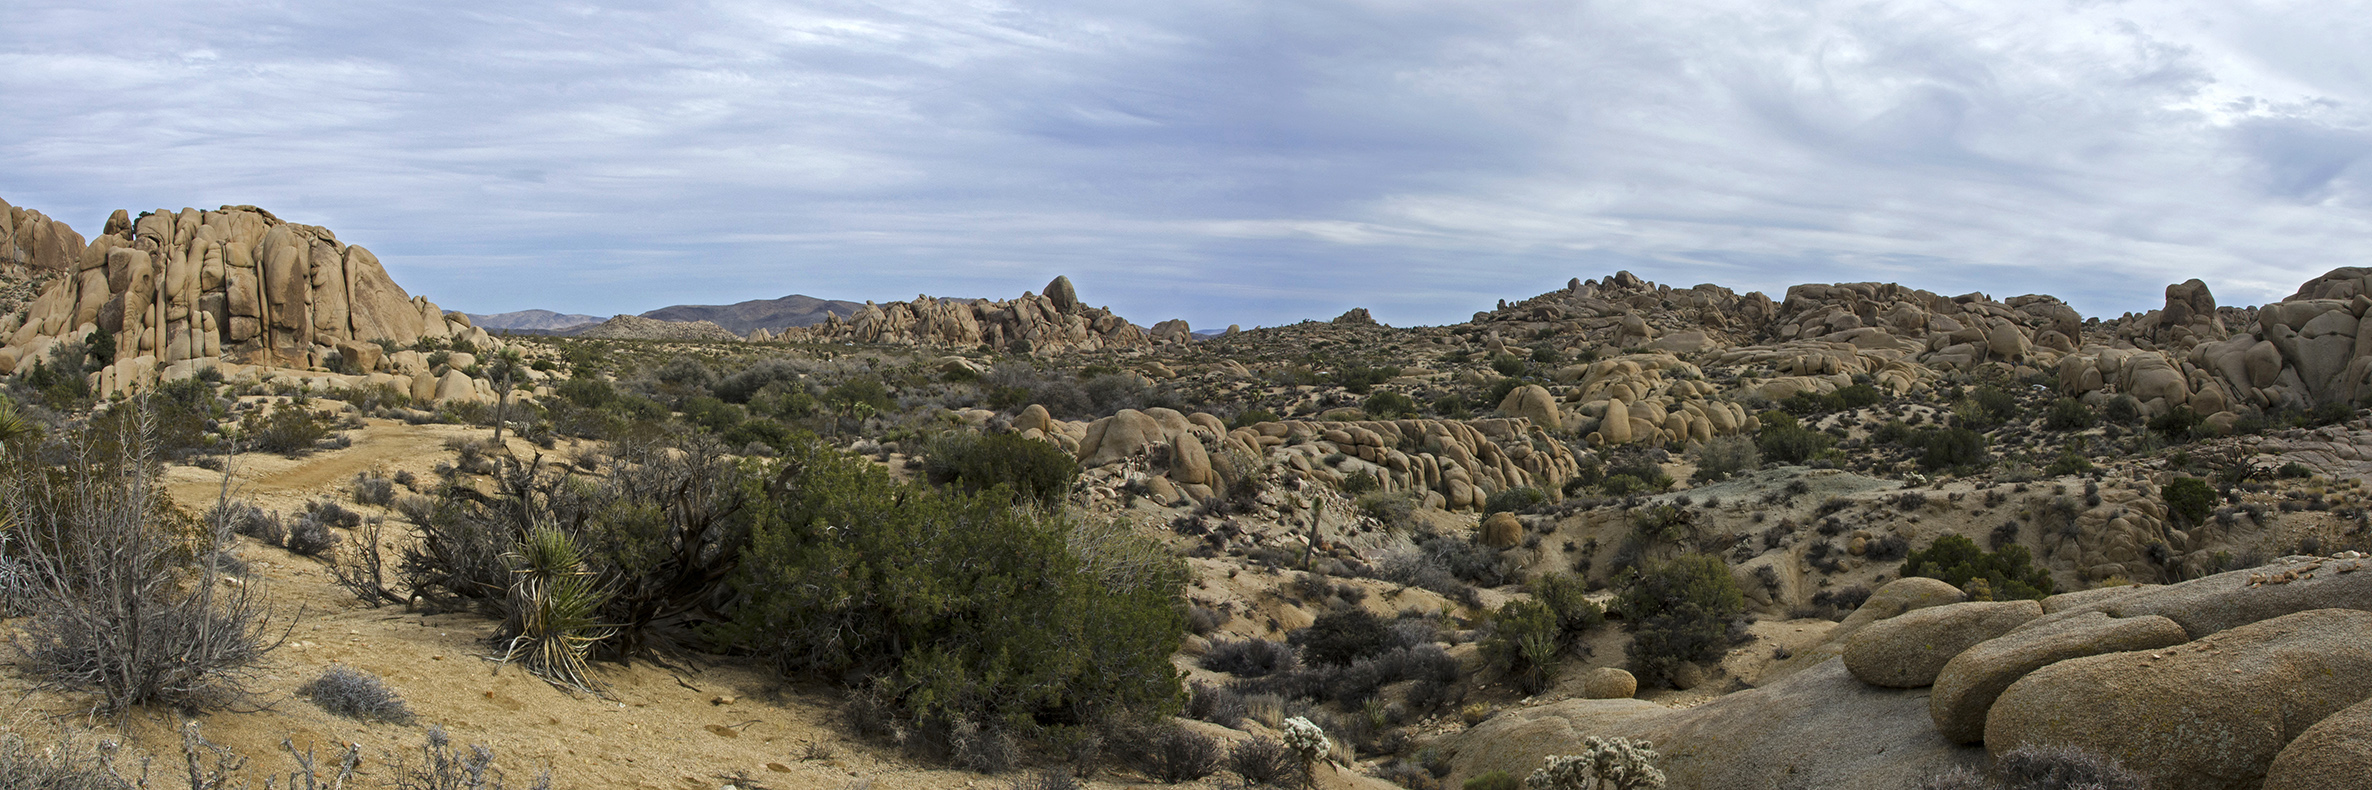 Skull Rock Trail - Joshua Tree NP 20